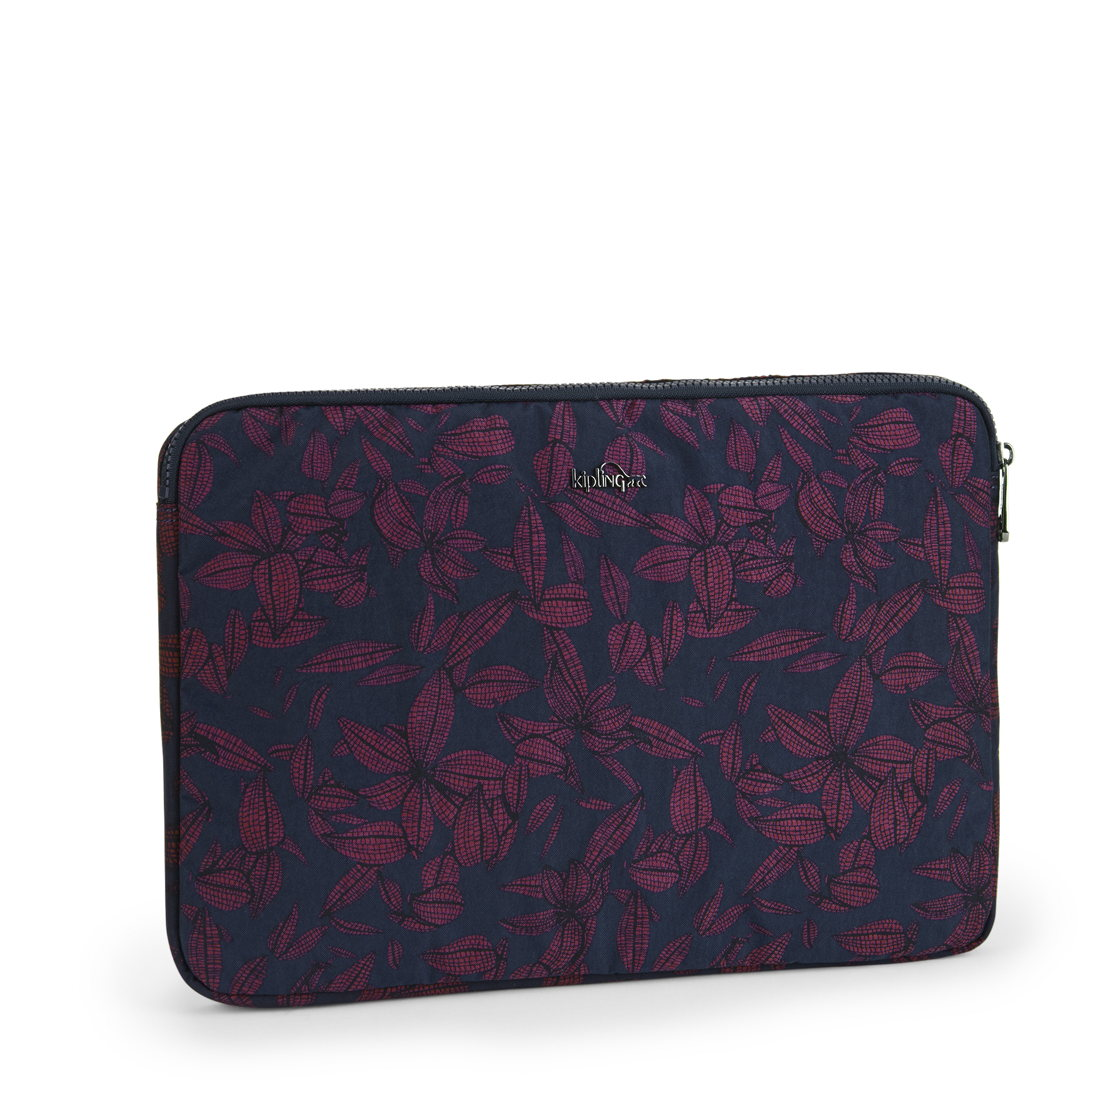 Laptop Cover Orchid Bloom